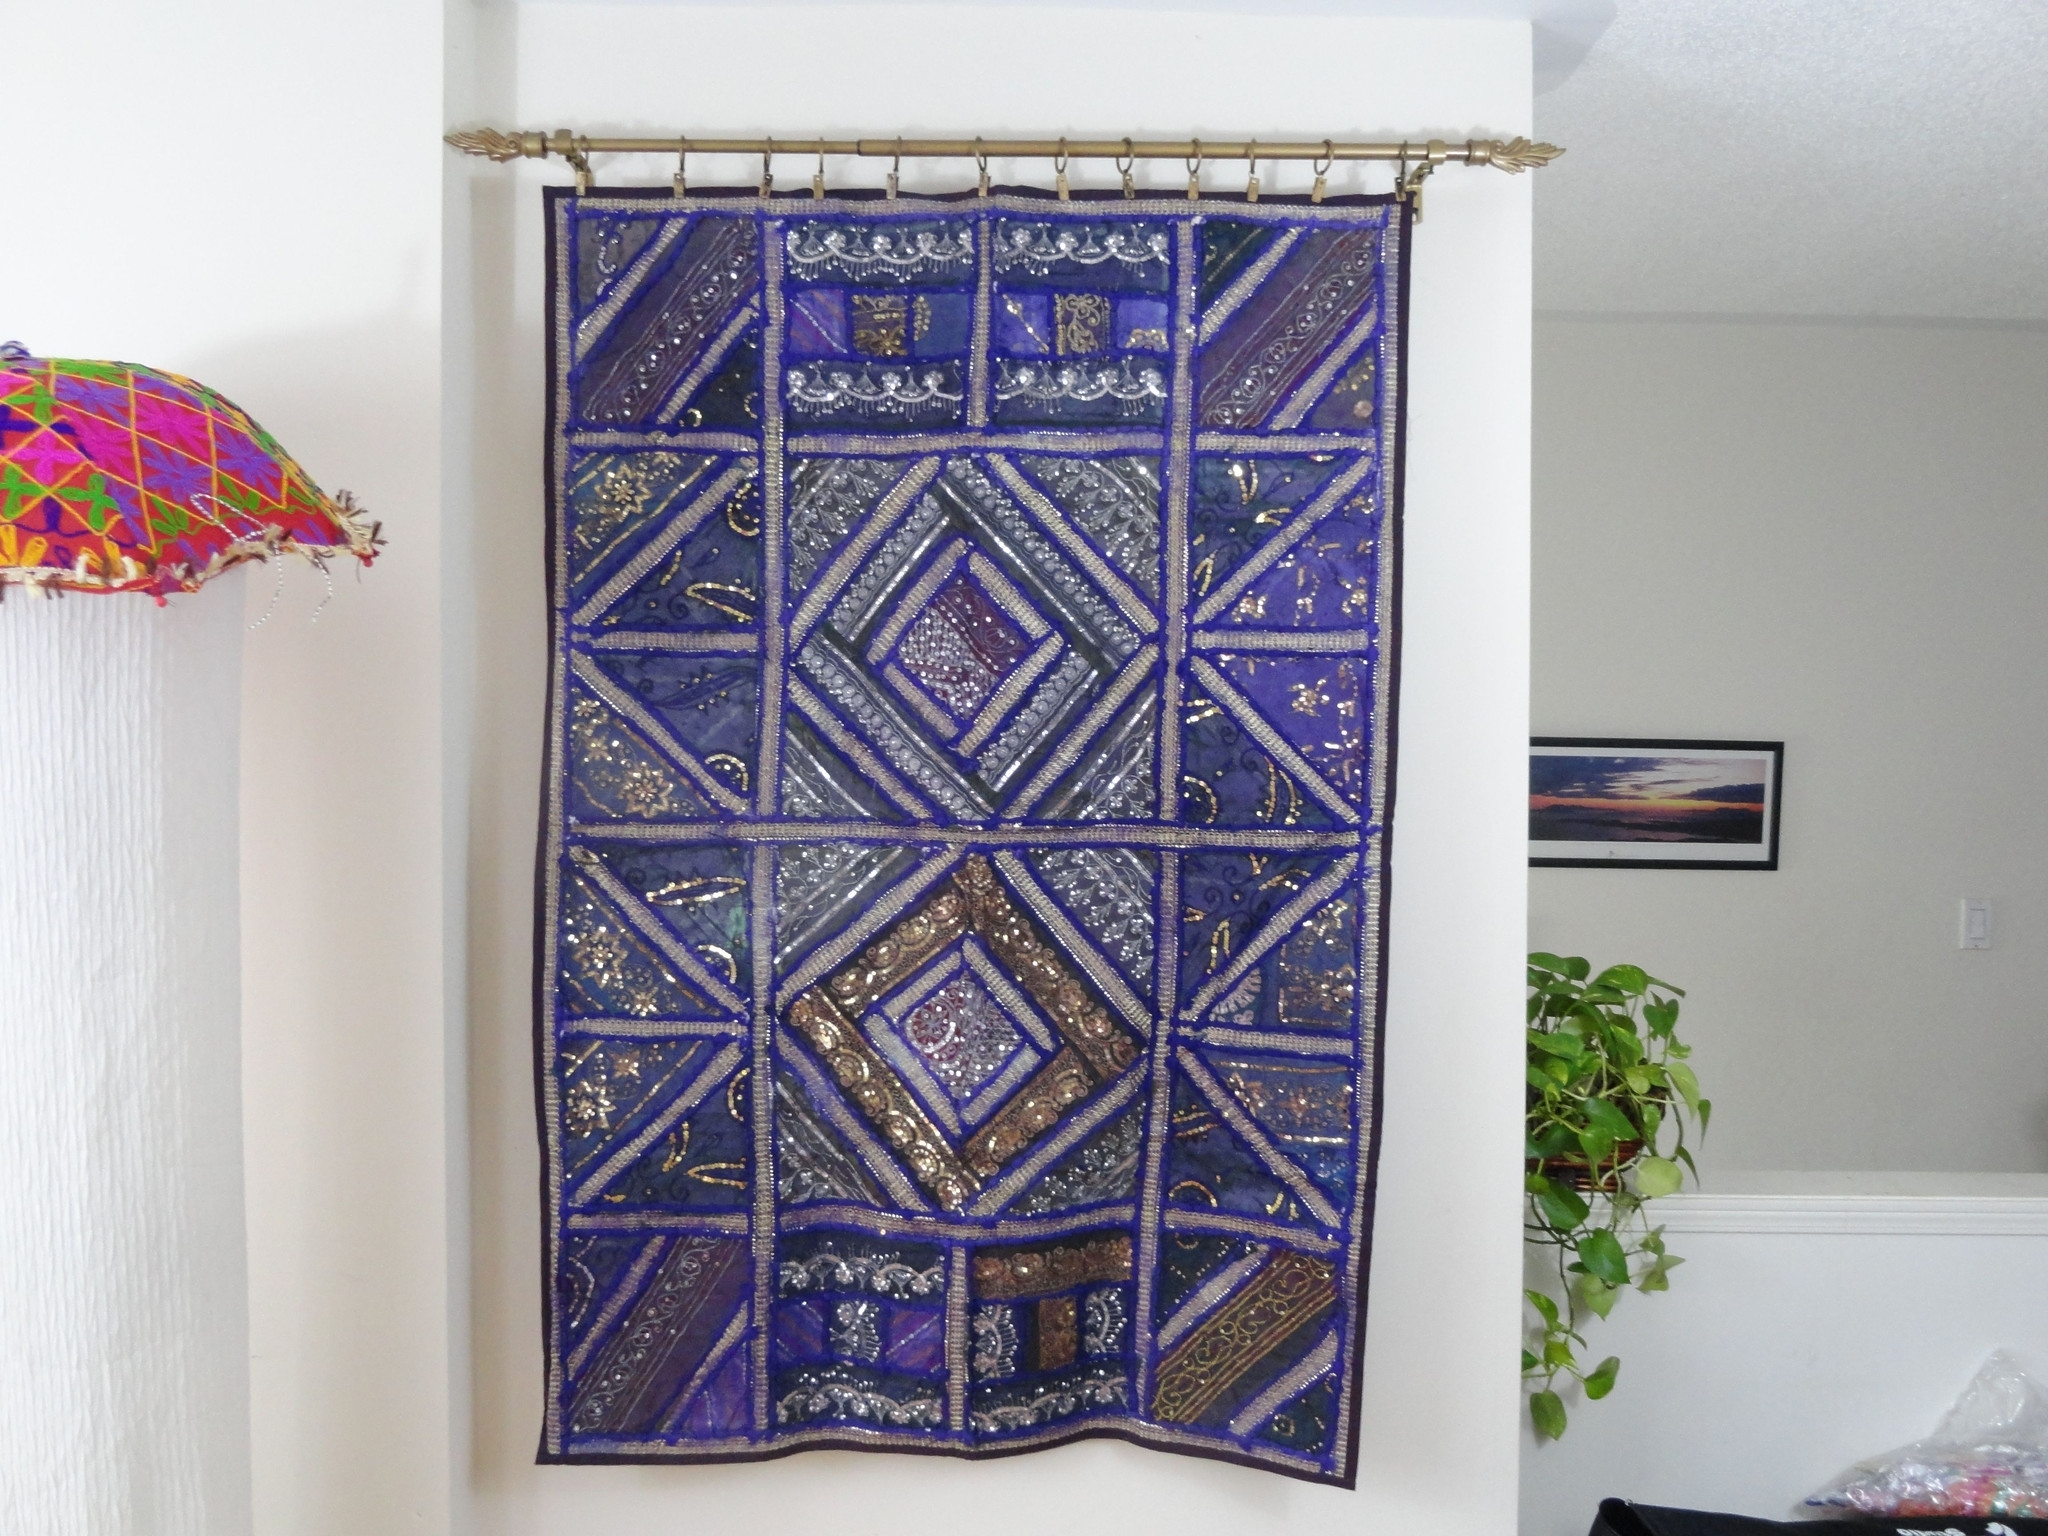 Ethnic Gifts For The Home Fabric Wall Tapestry (View 1 of 15)